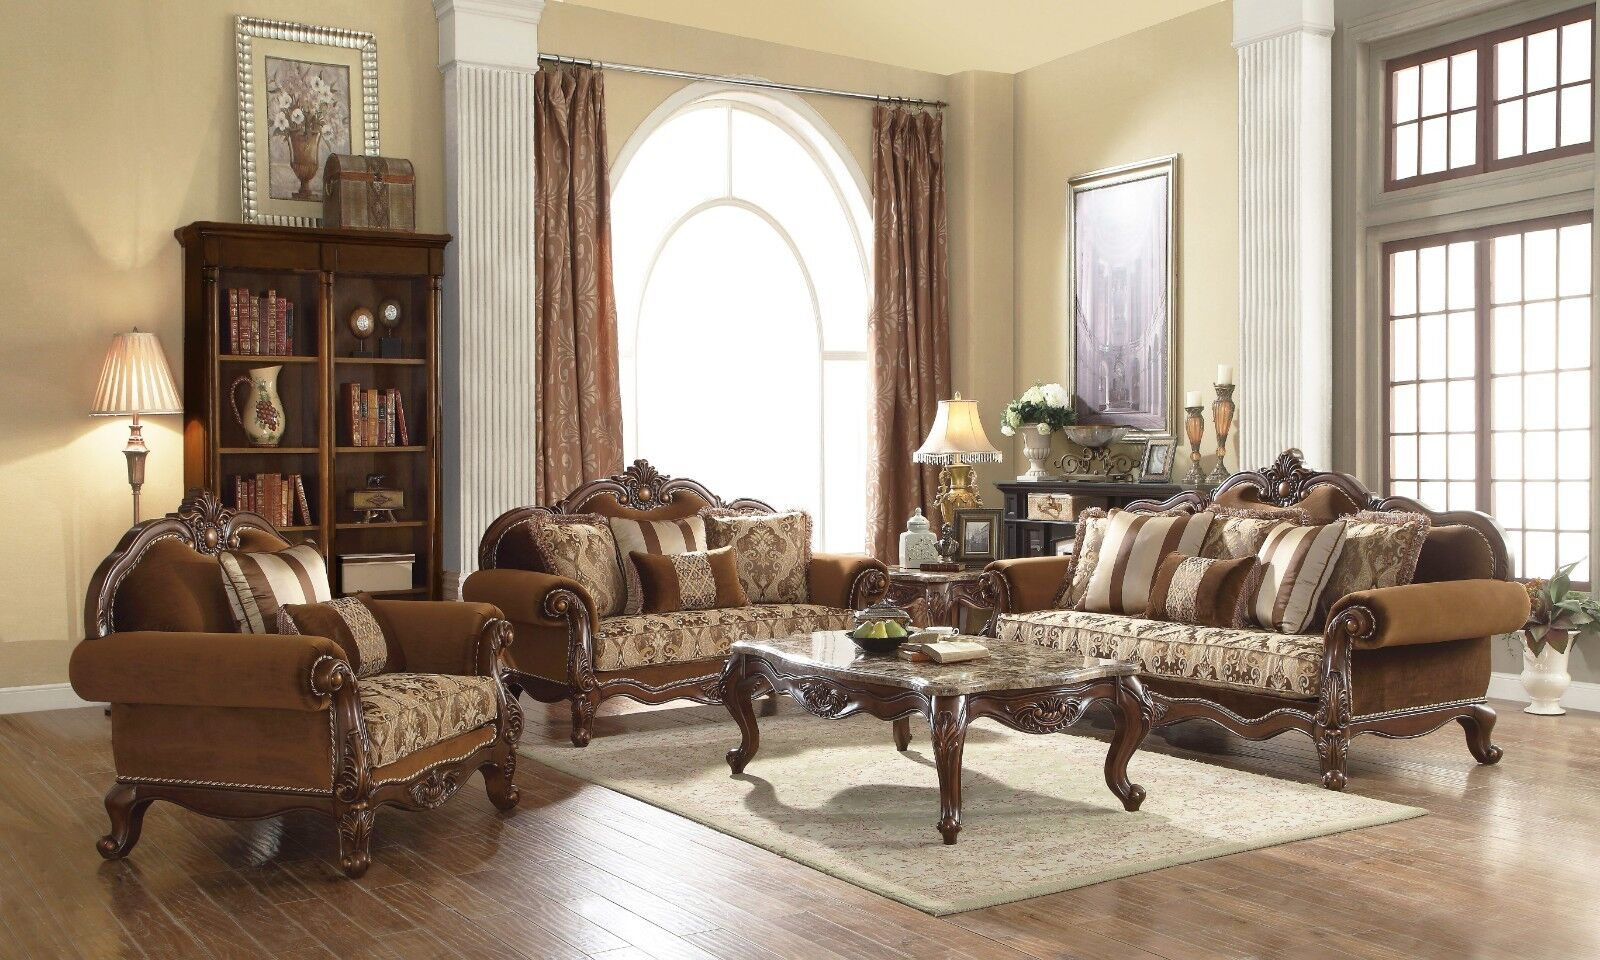 Details about Traditional Brown Formal Living Room Furniture 2 pc Sofa Set  Carved Wood Frames